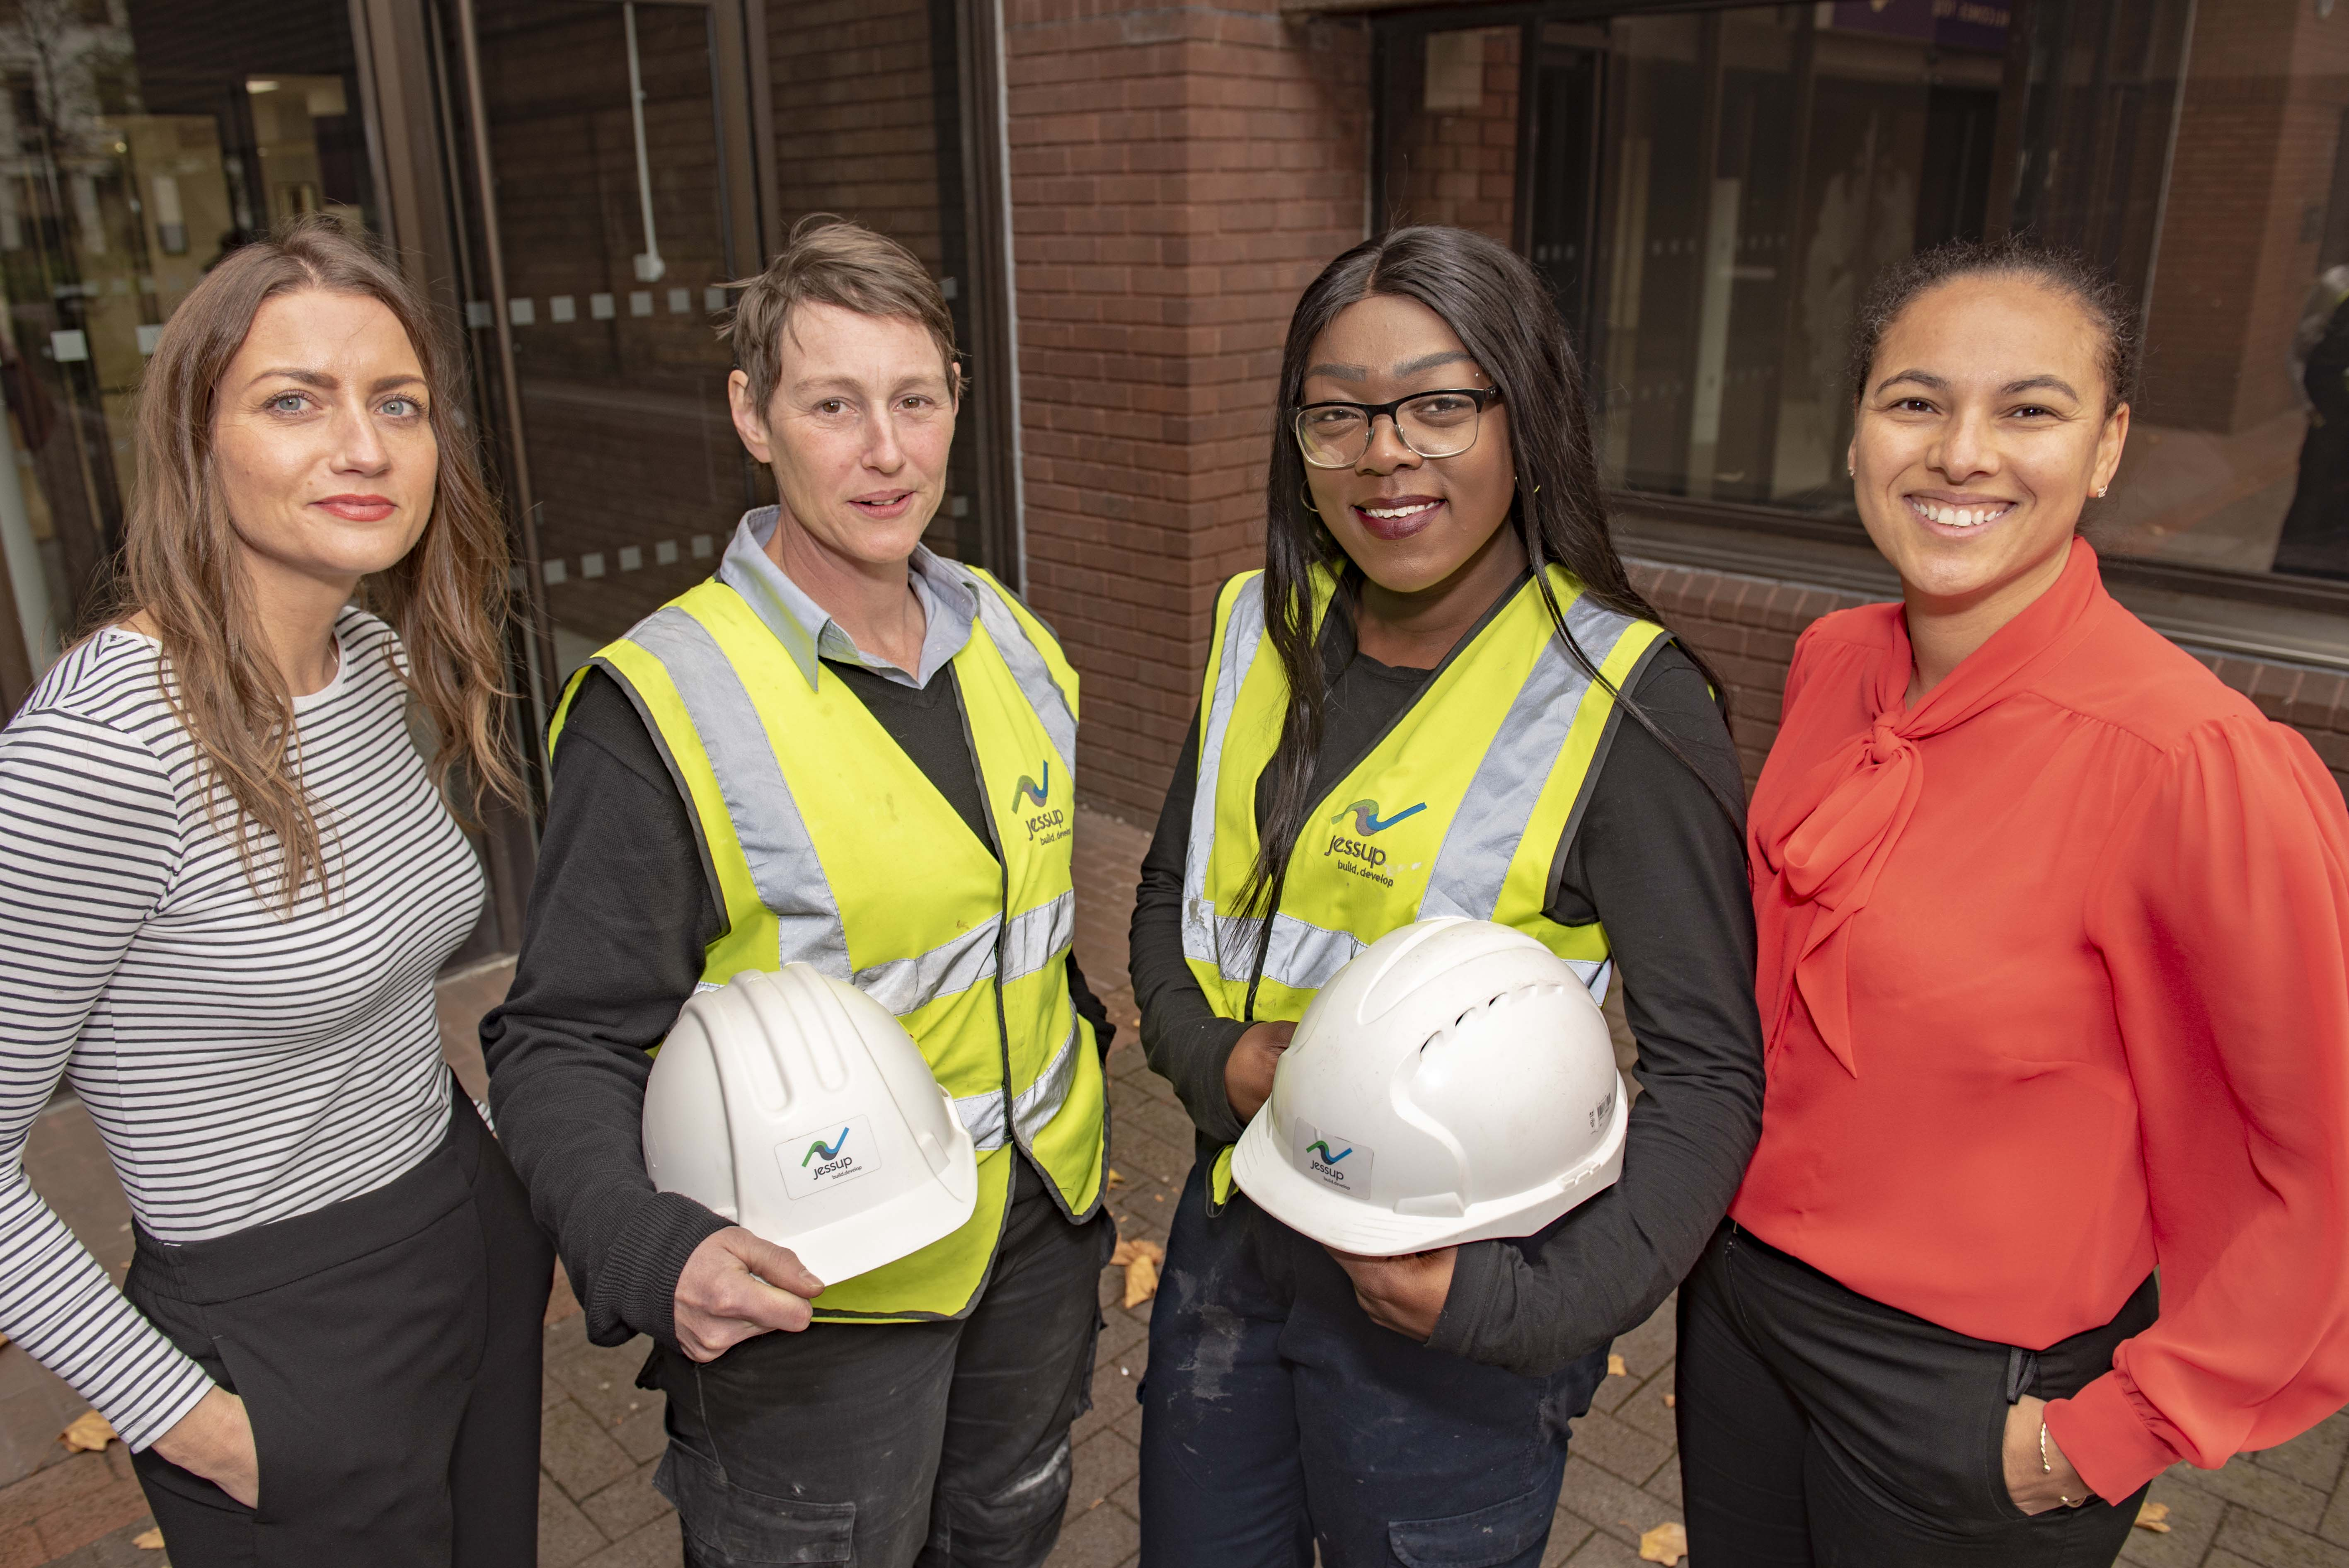 Wolves at Work buck trend for women in construction